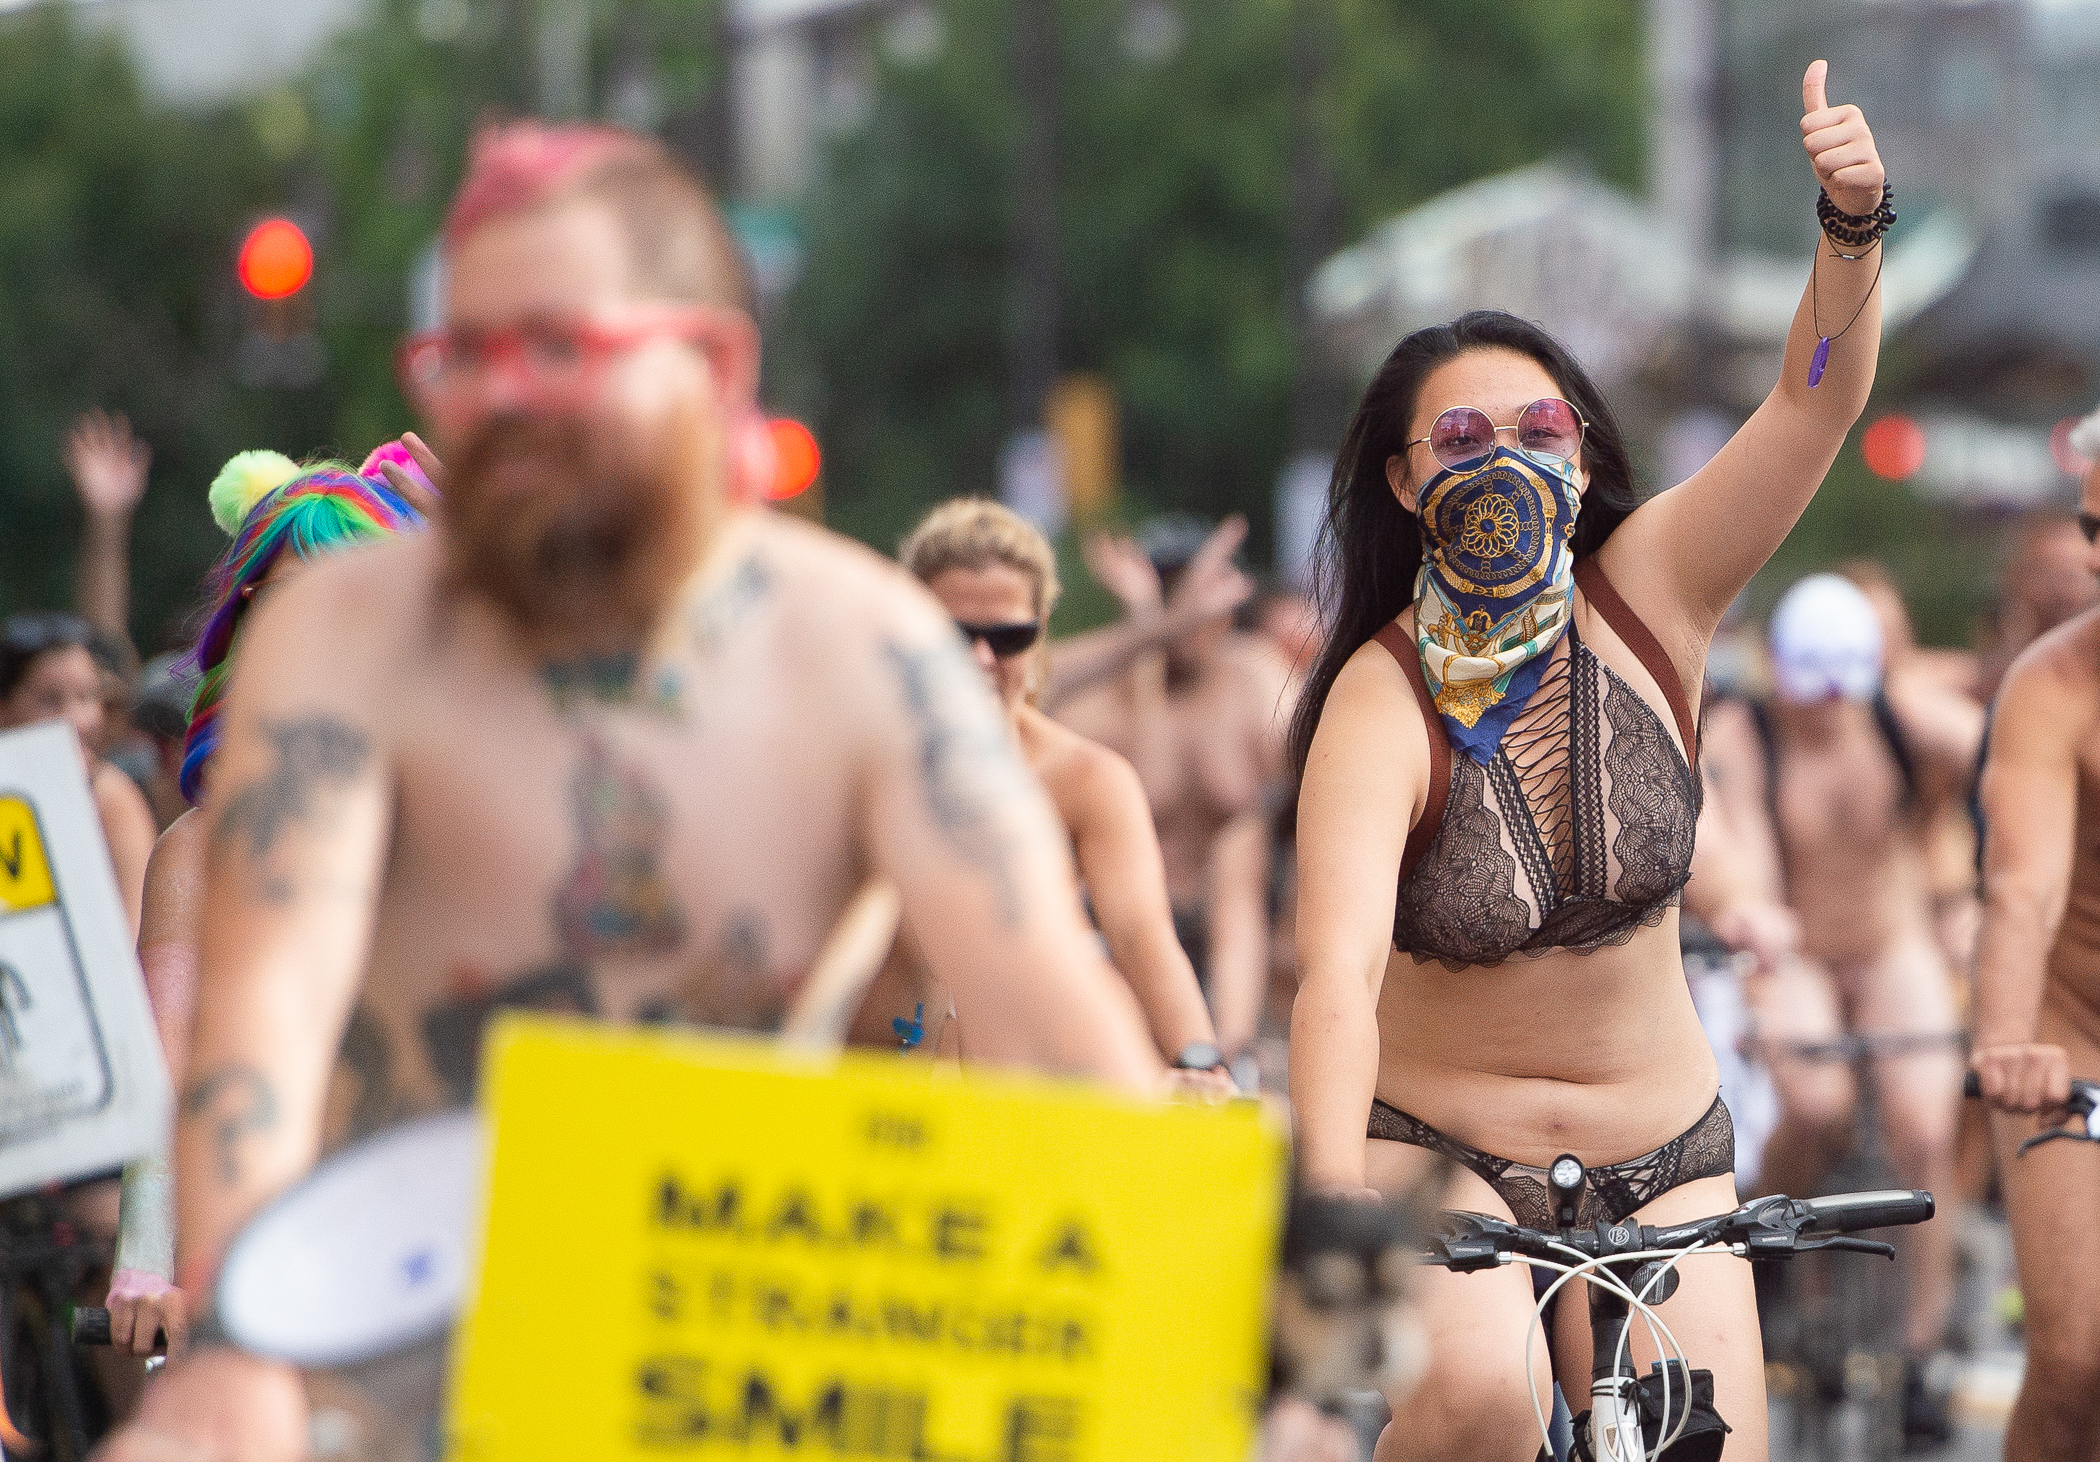 All smiles, Philly Naked Bike Ride returns for 11th year